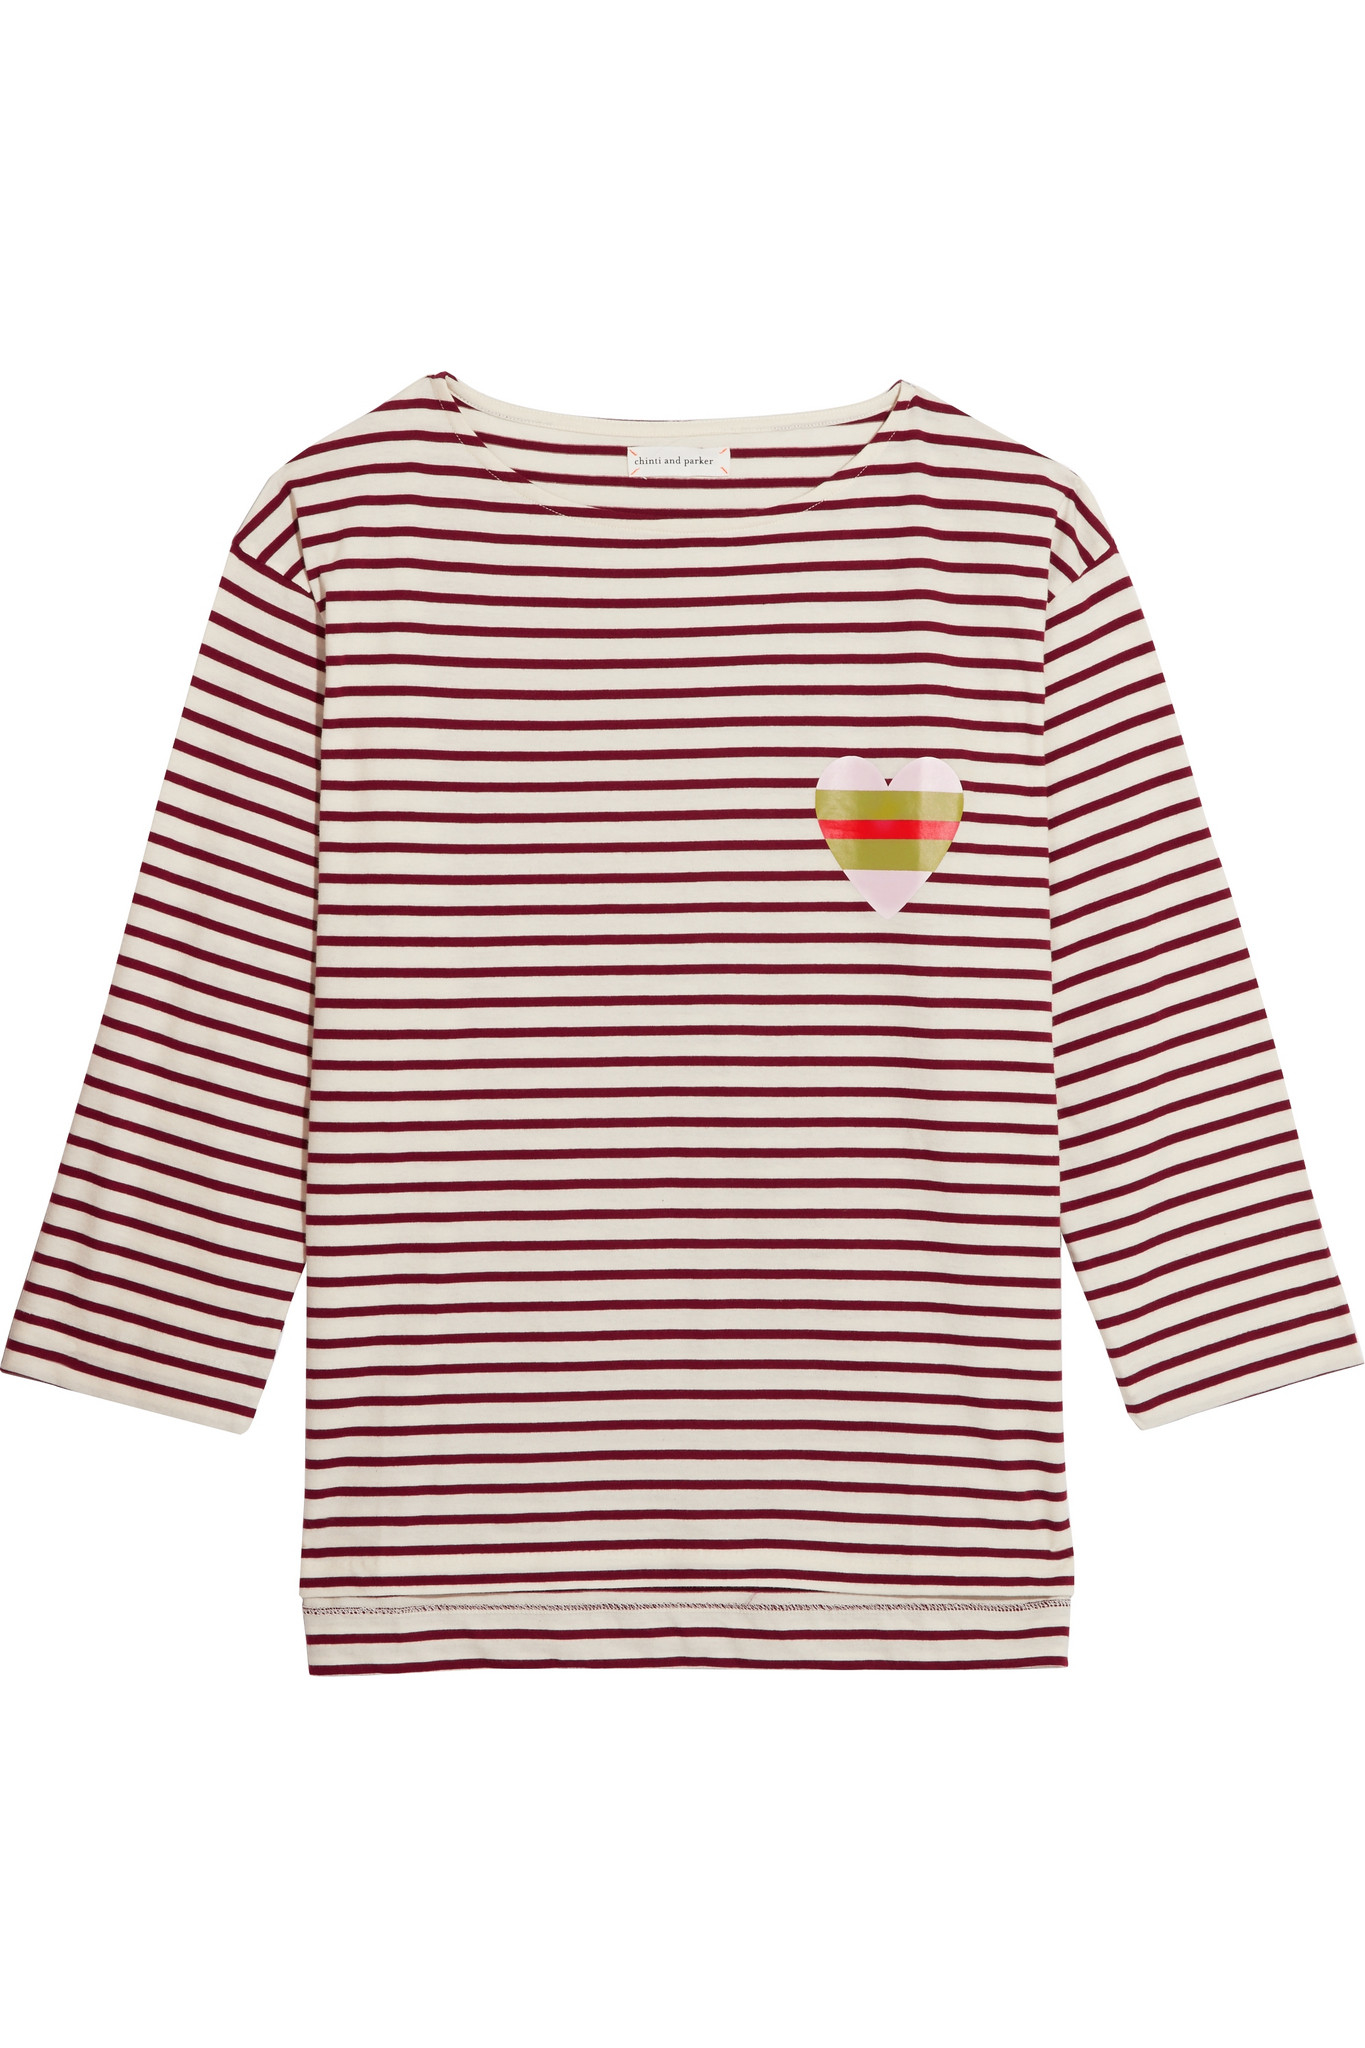 Chinti & parker Striped Organic Cotton-jersey Top in Red ...